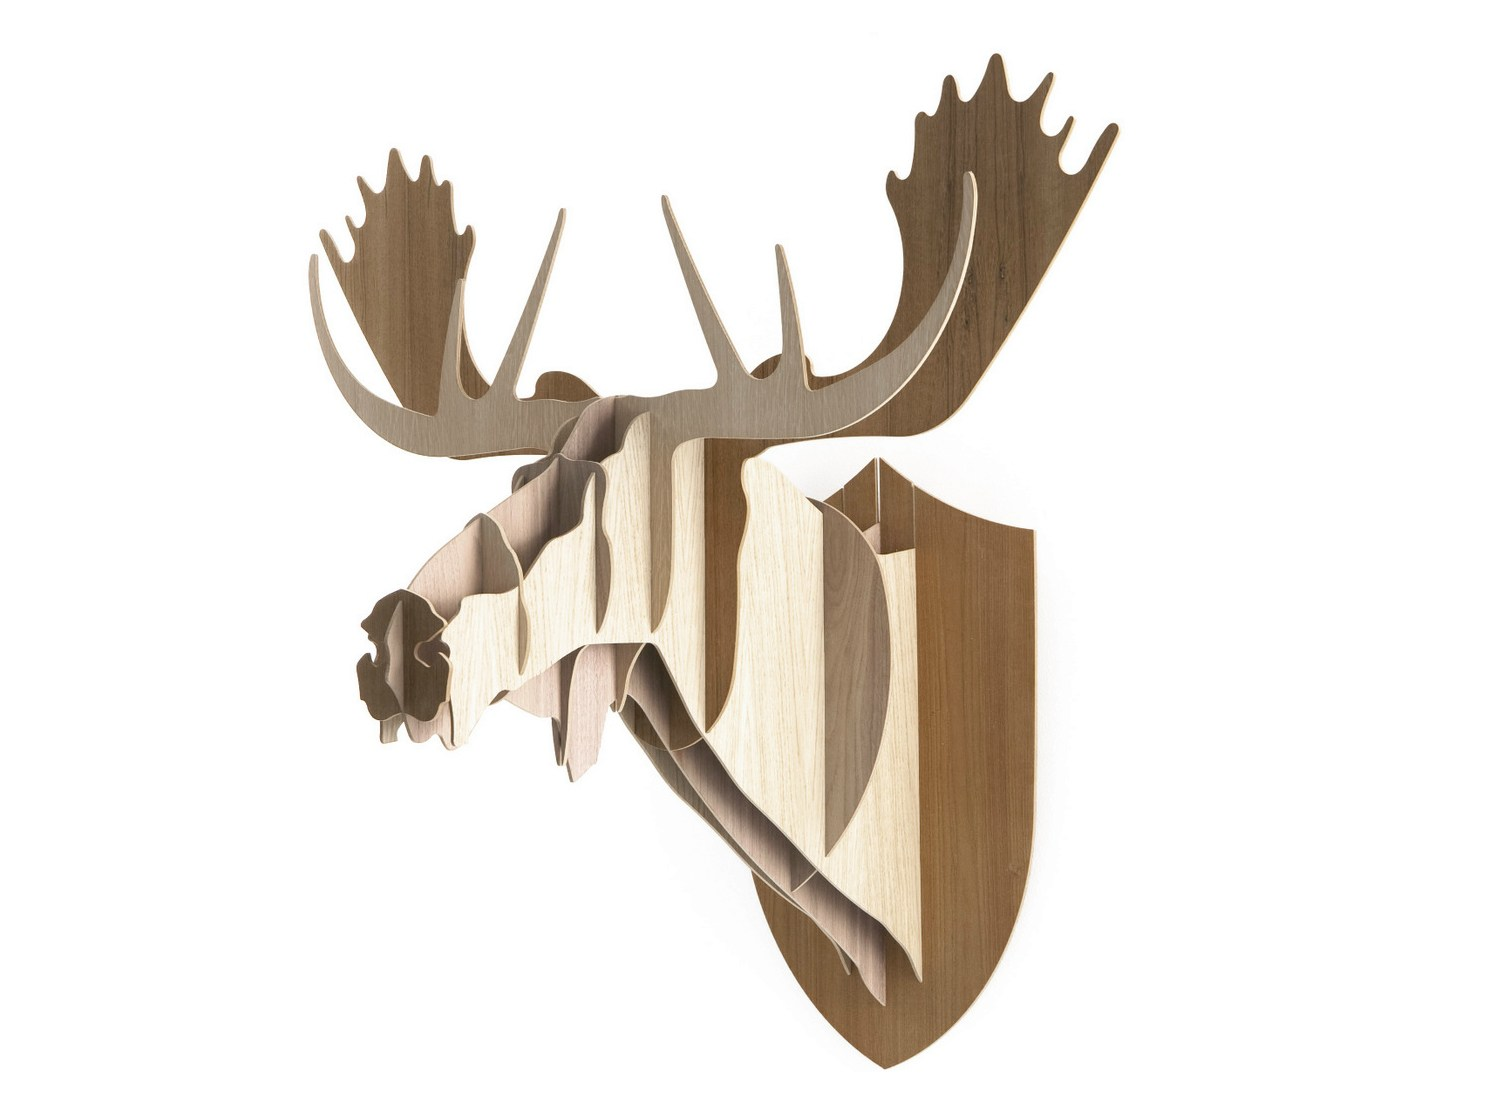 Wooden Wall Decor Item MOOSE By Moustache Design BigGame - Moose wall decor